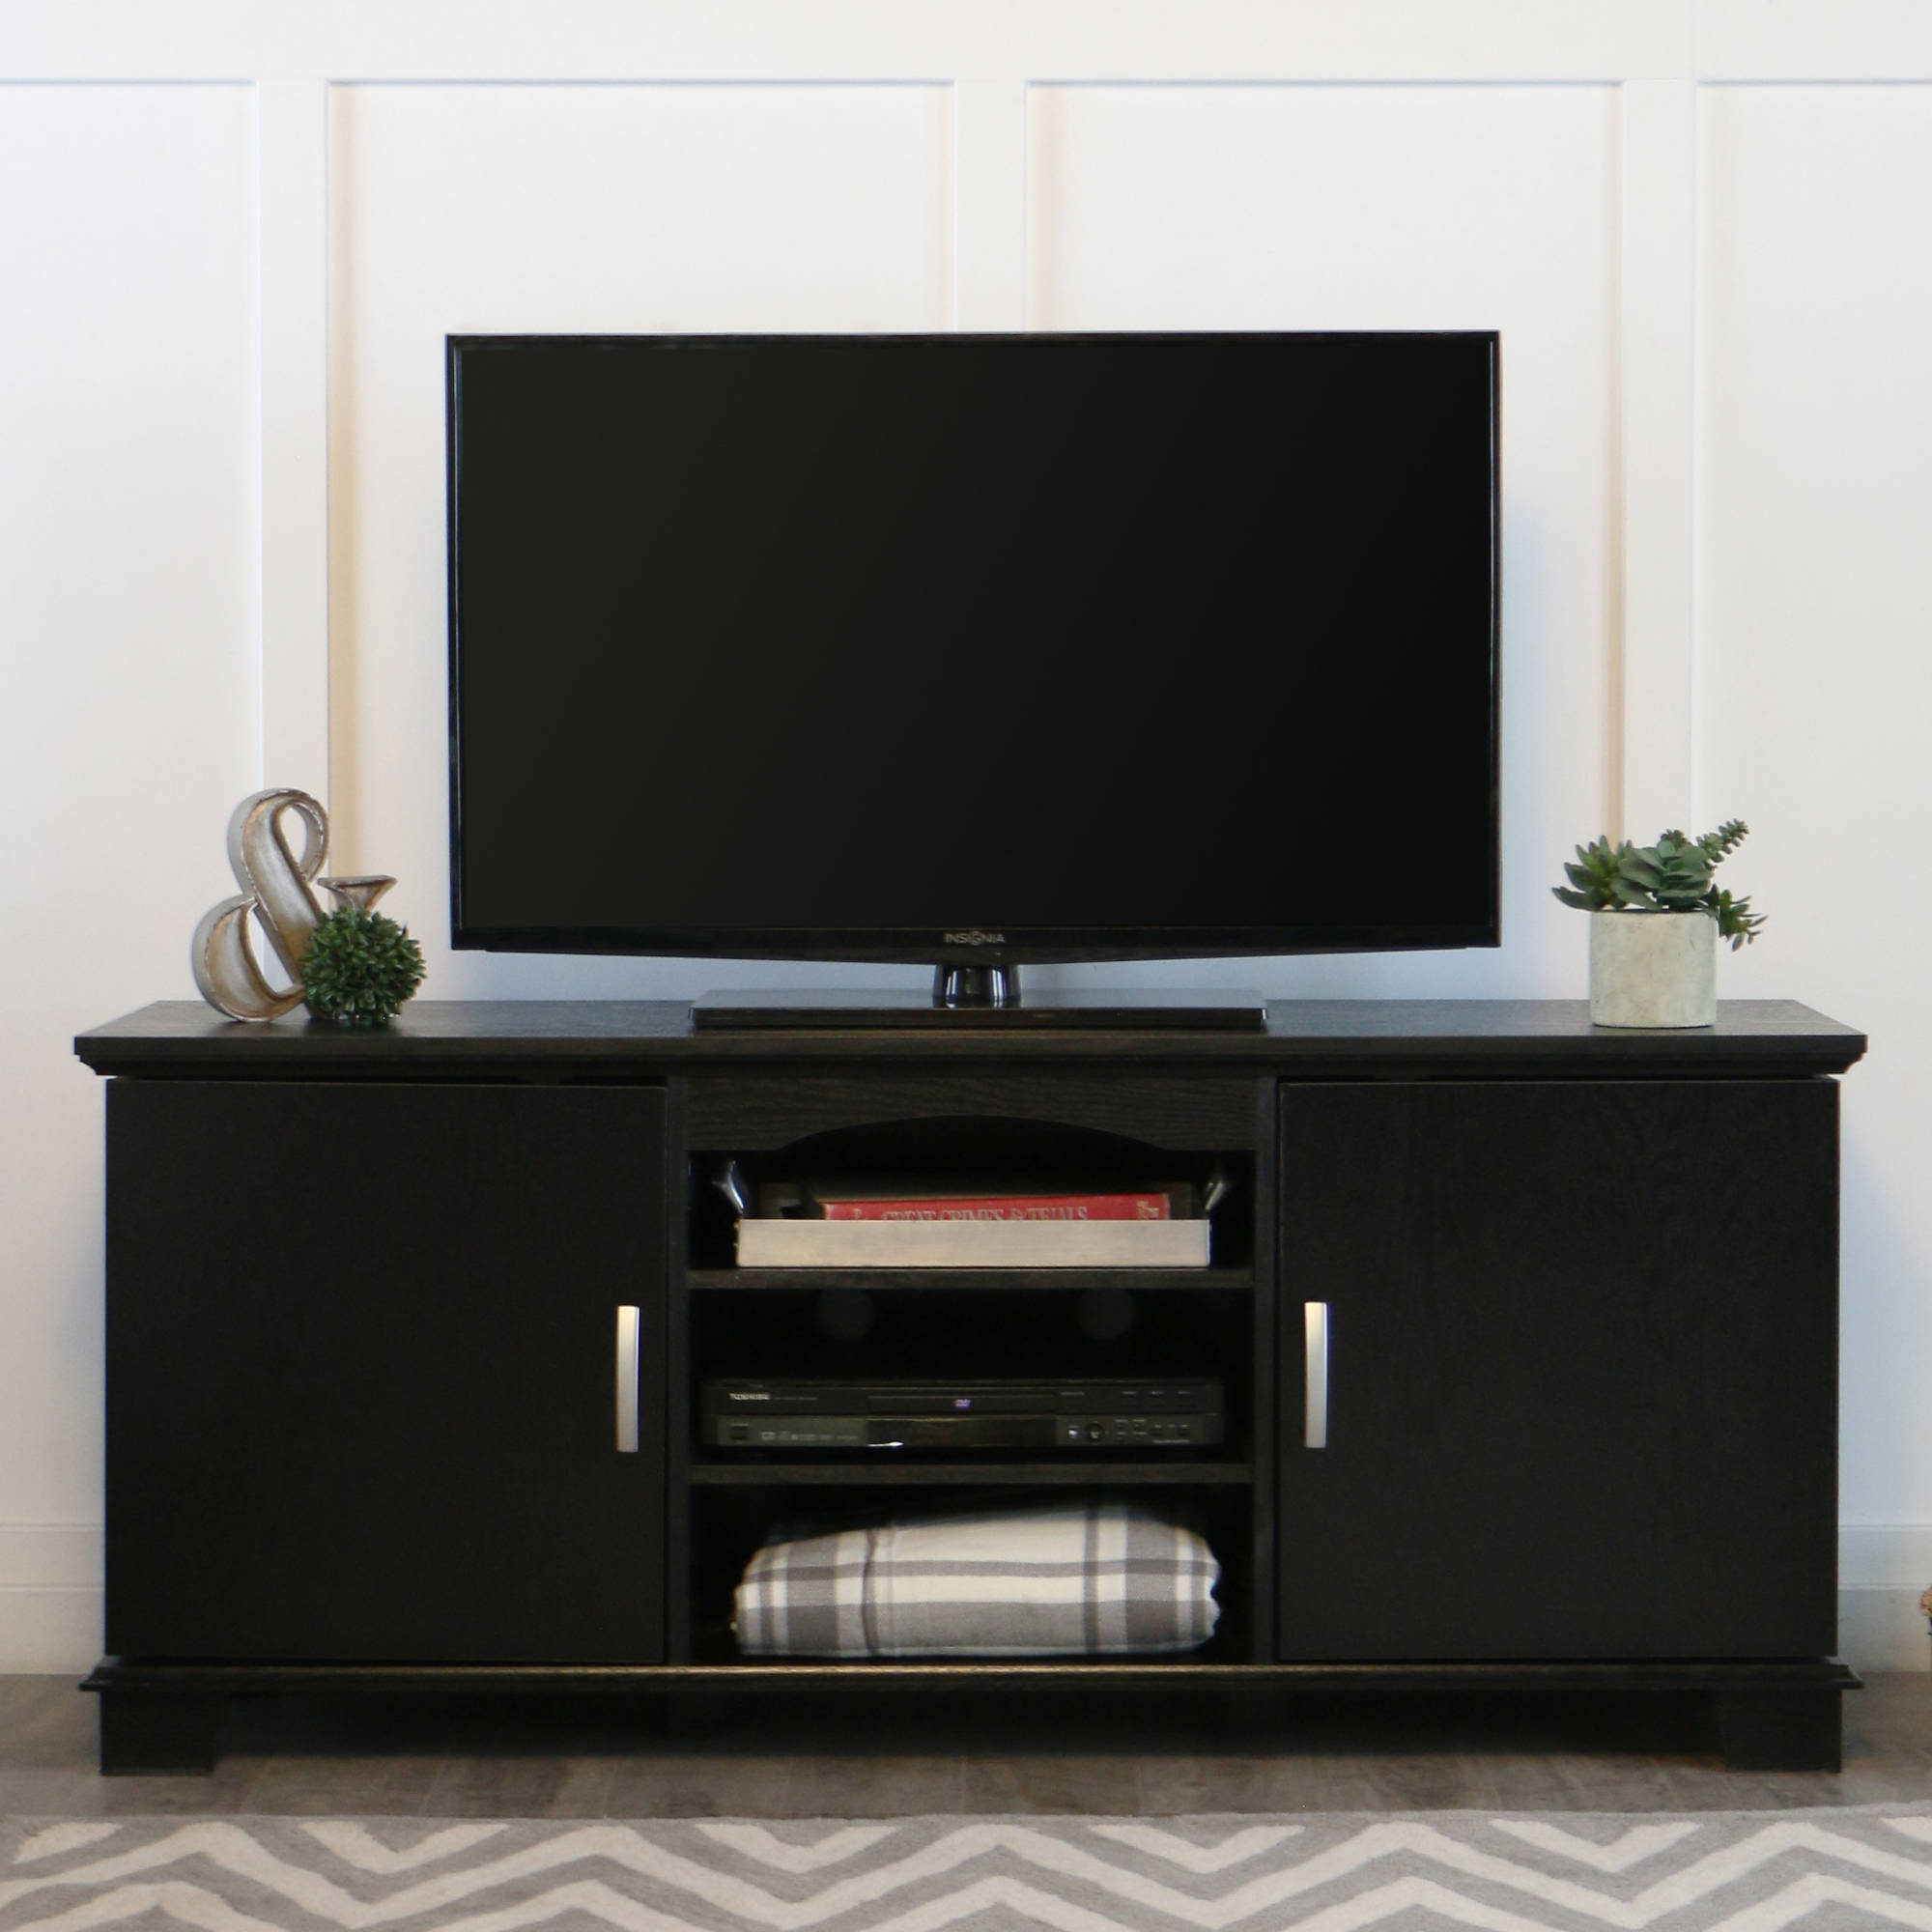 Stock Photo Picture 1 Of 4  Black 65 Inch Tv Stand EBay64